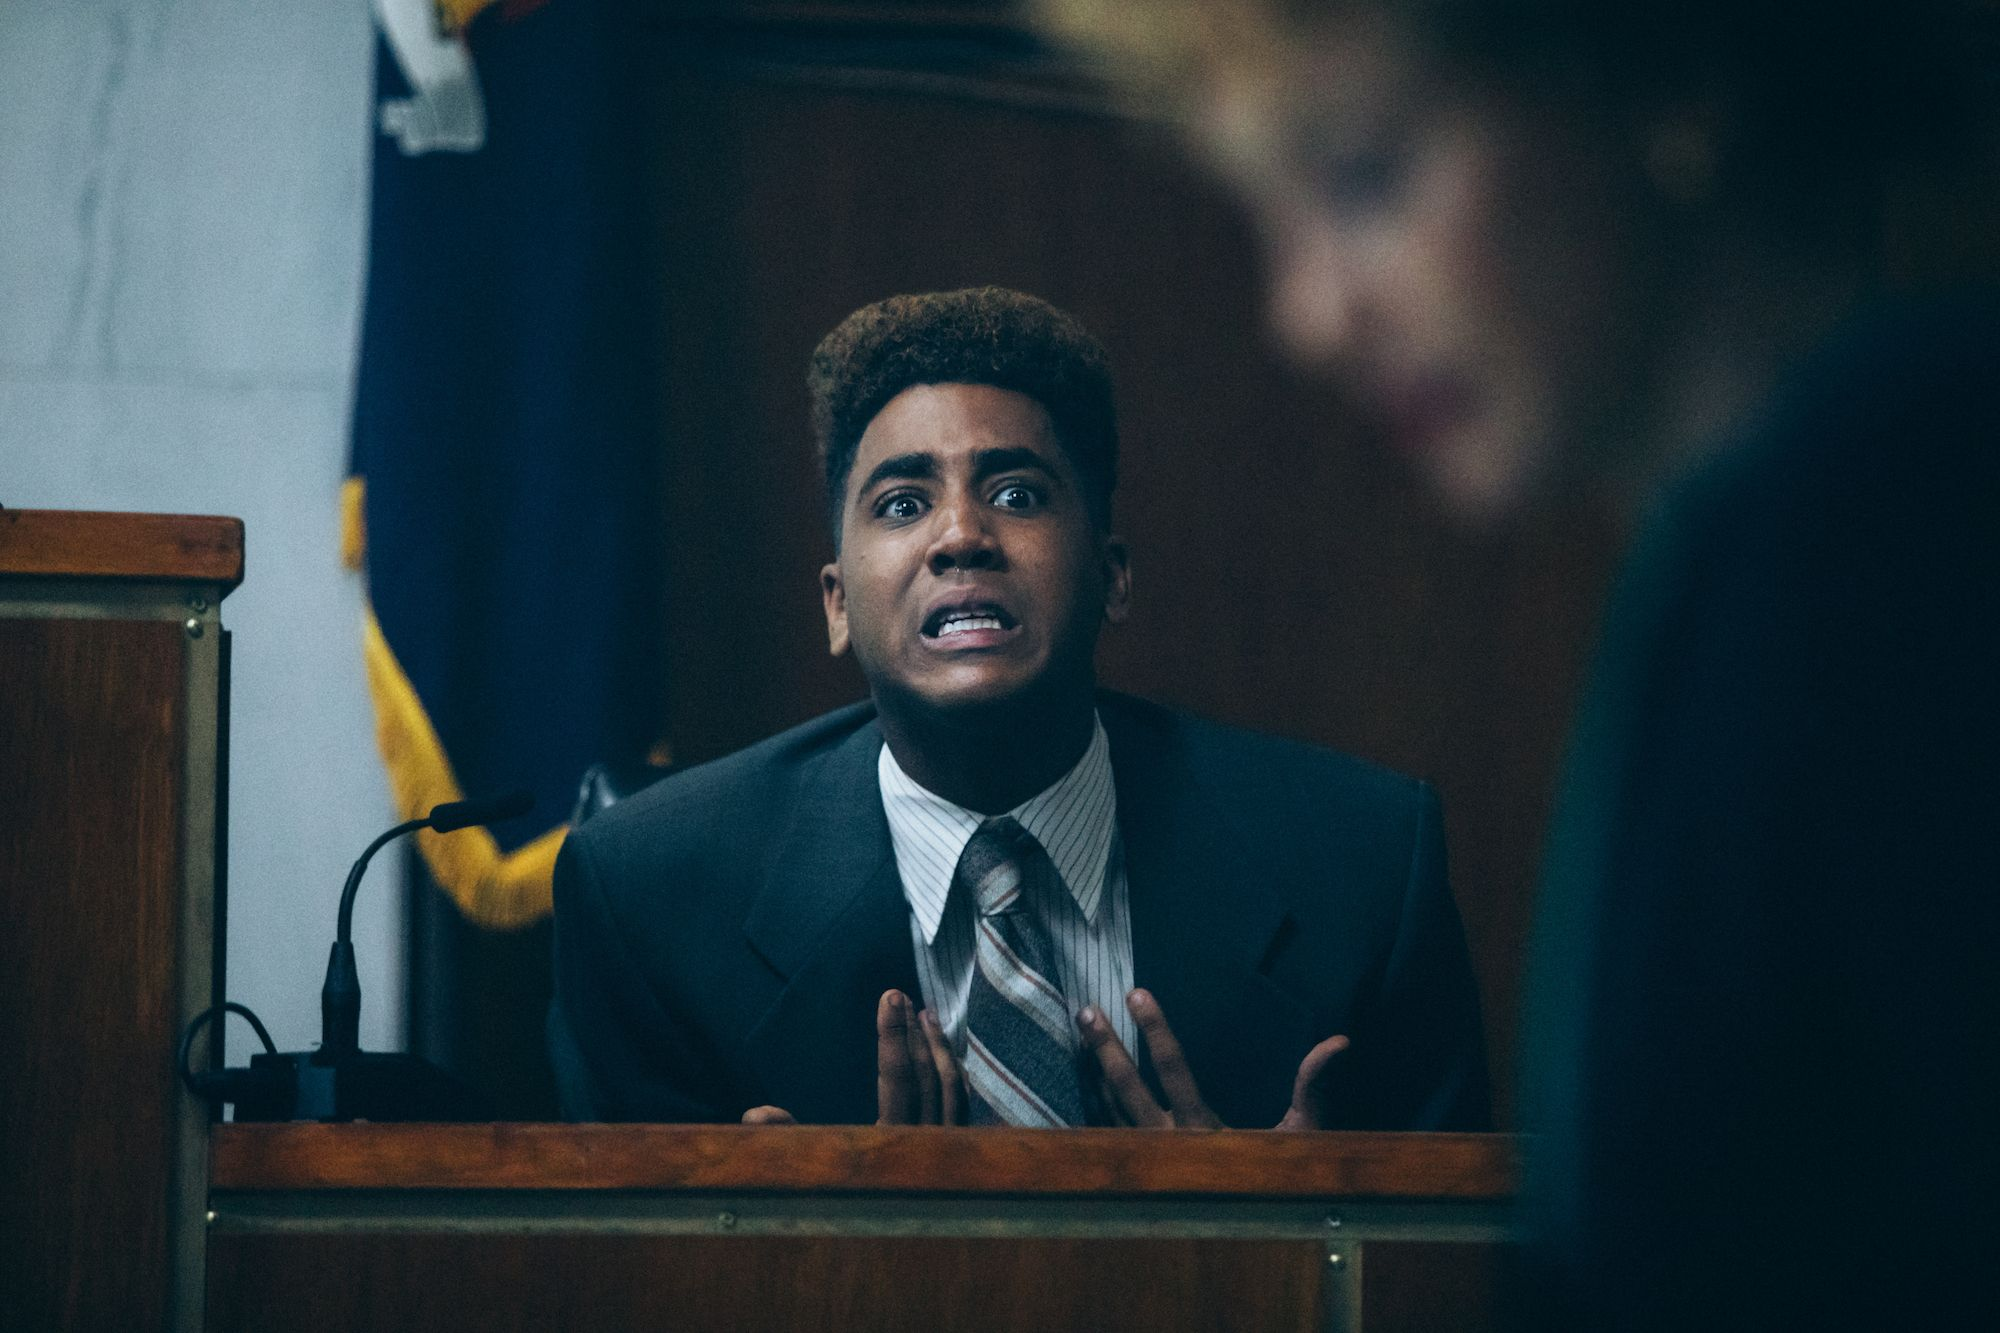 Ava DuVernay's Central Park Five Series When They See Us Gets a Powerful First Trailer